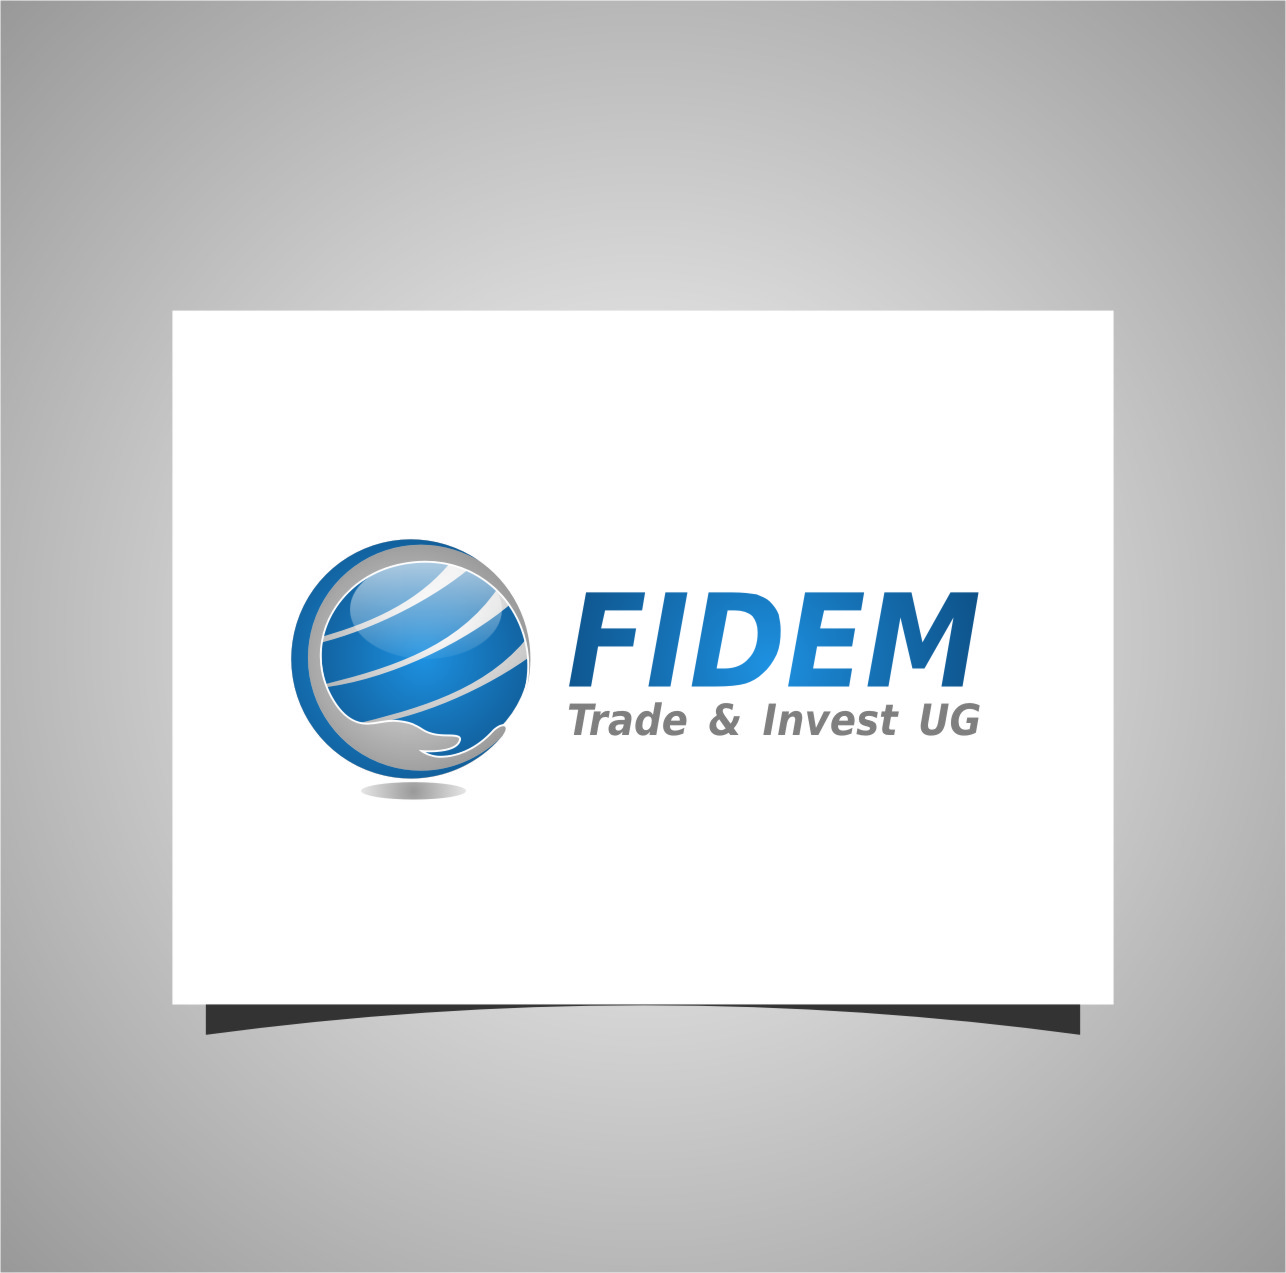 Logo Design by RasYa Muhammad Athaya - Entry No. 37 in the Logo Design Contest Professional Logo Design for FIDEM Trade & Invest UG.